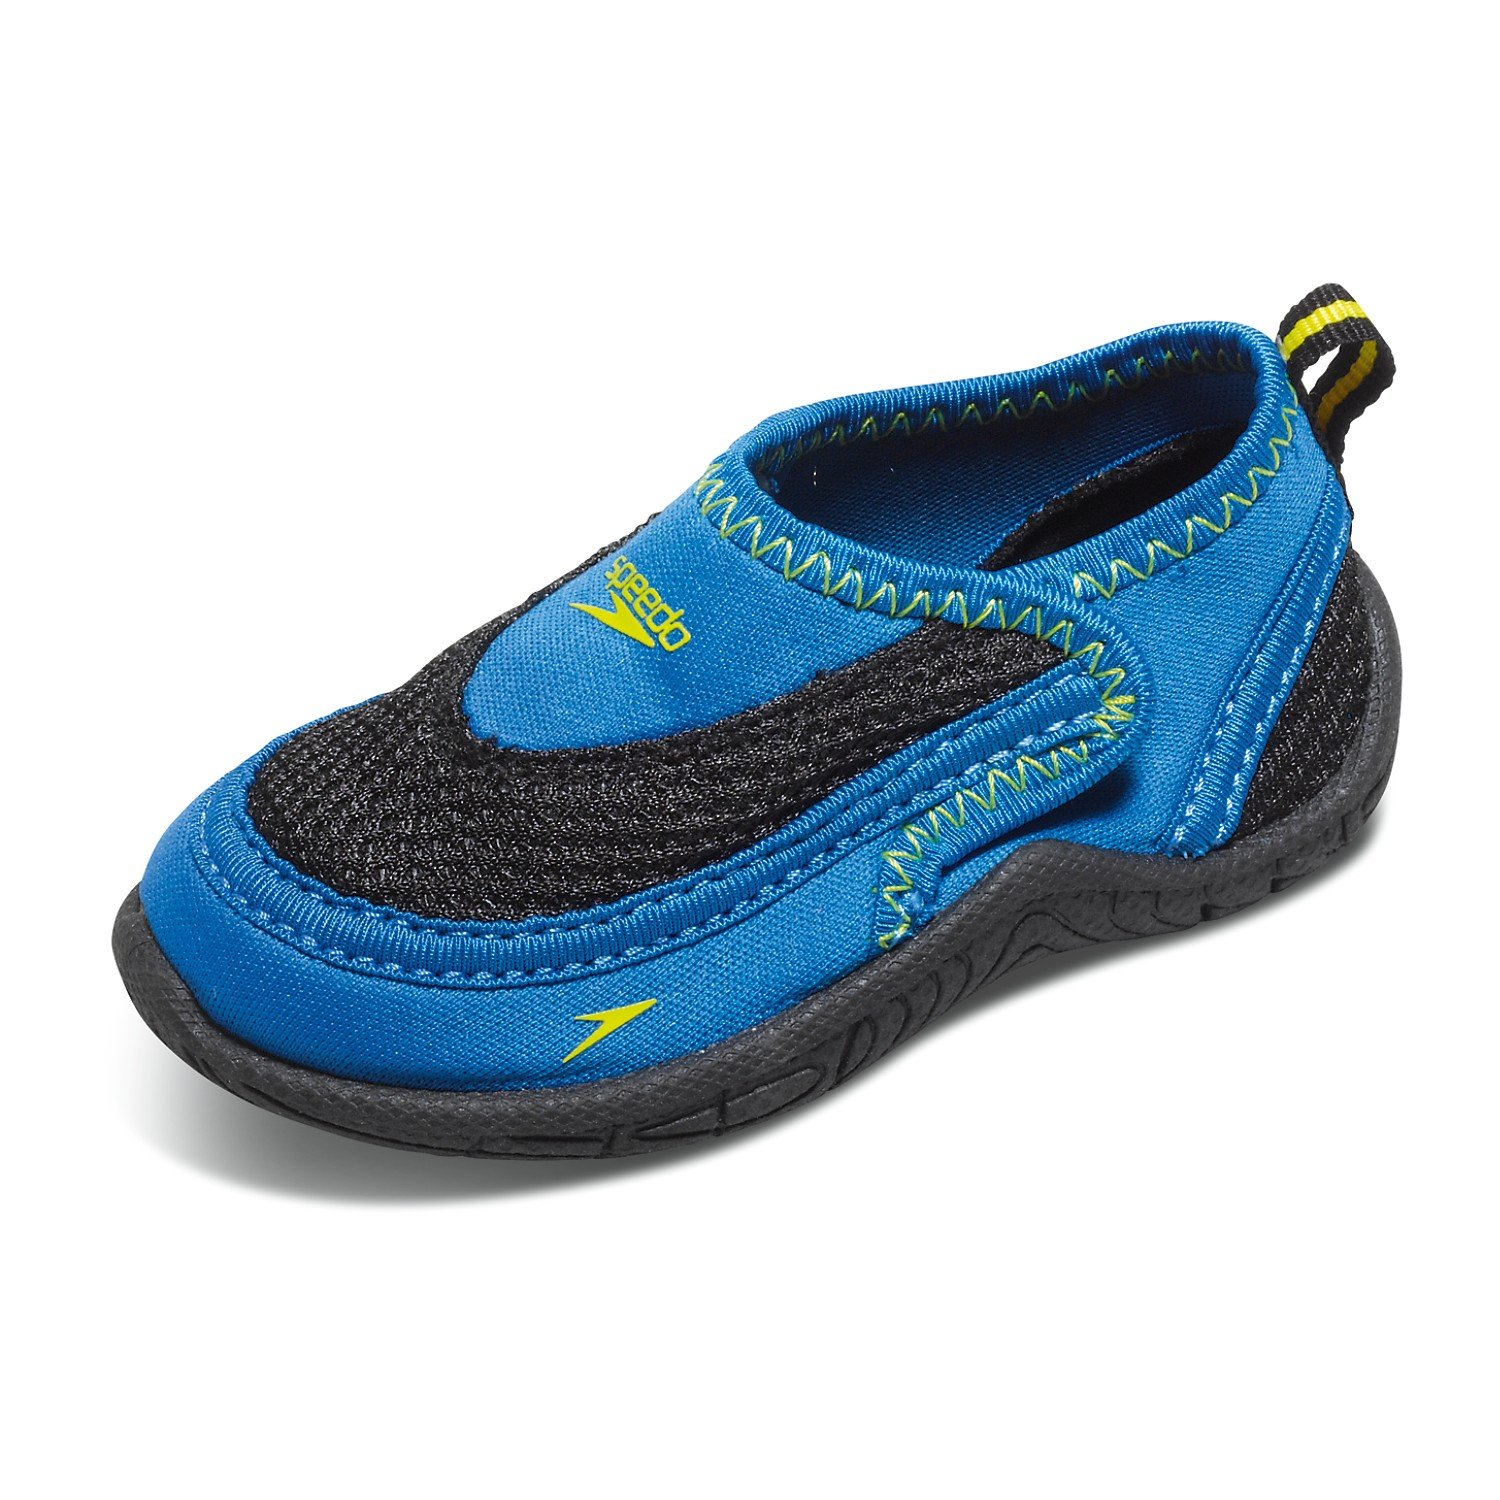 good Speedo Toddler Surfwalker Pro 2.0 Water Shoe & Travel